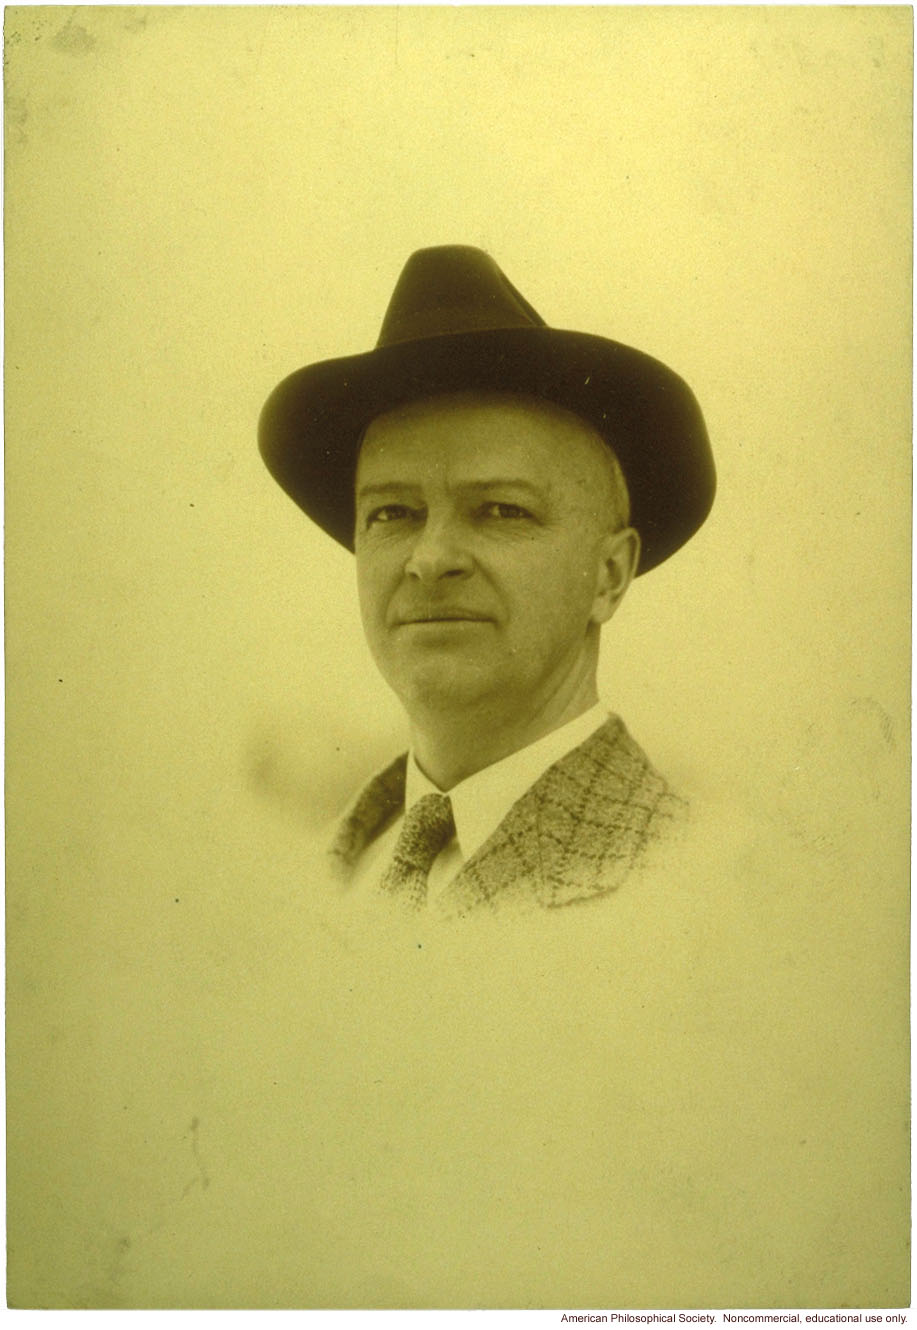 Harry H. Laughlin, Superintendent of Eugenics Record Office, Cold Spring Harbor; President, American Eugenics Society 1928-29